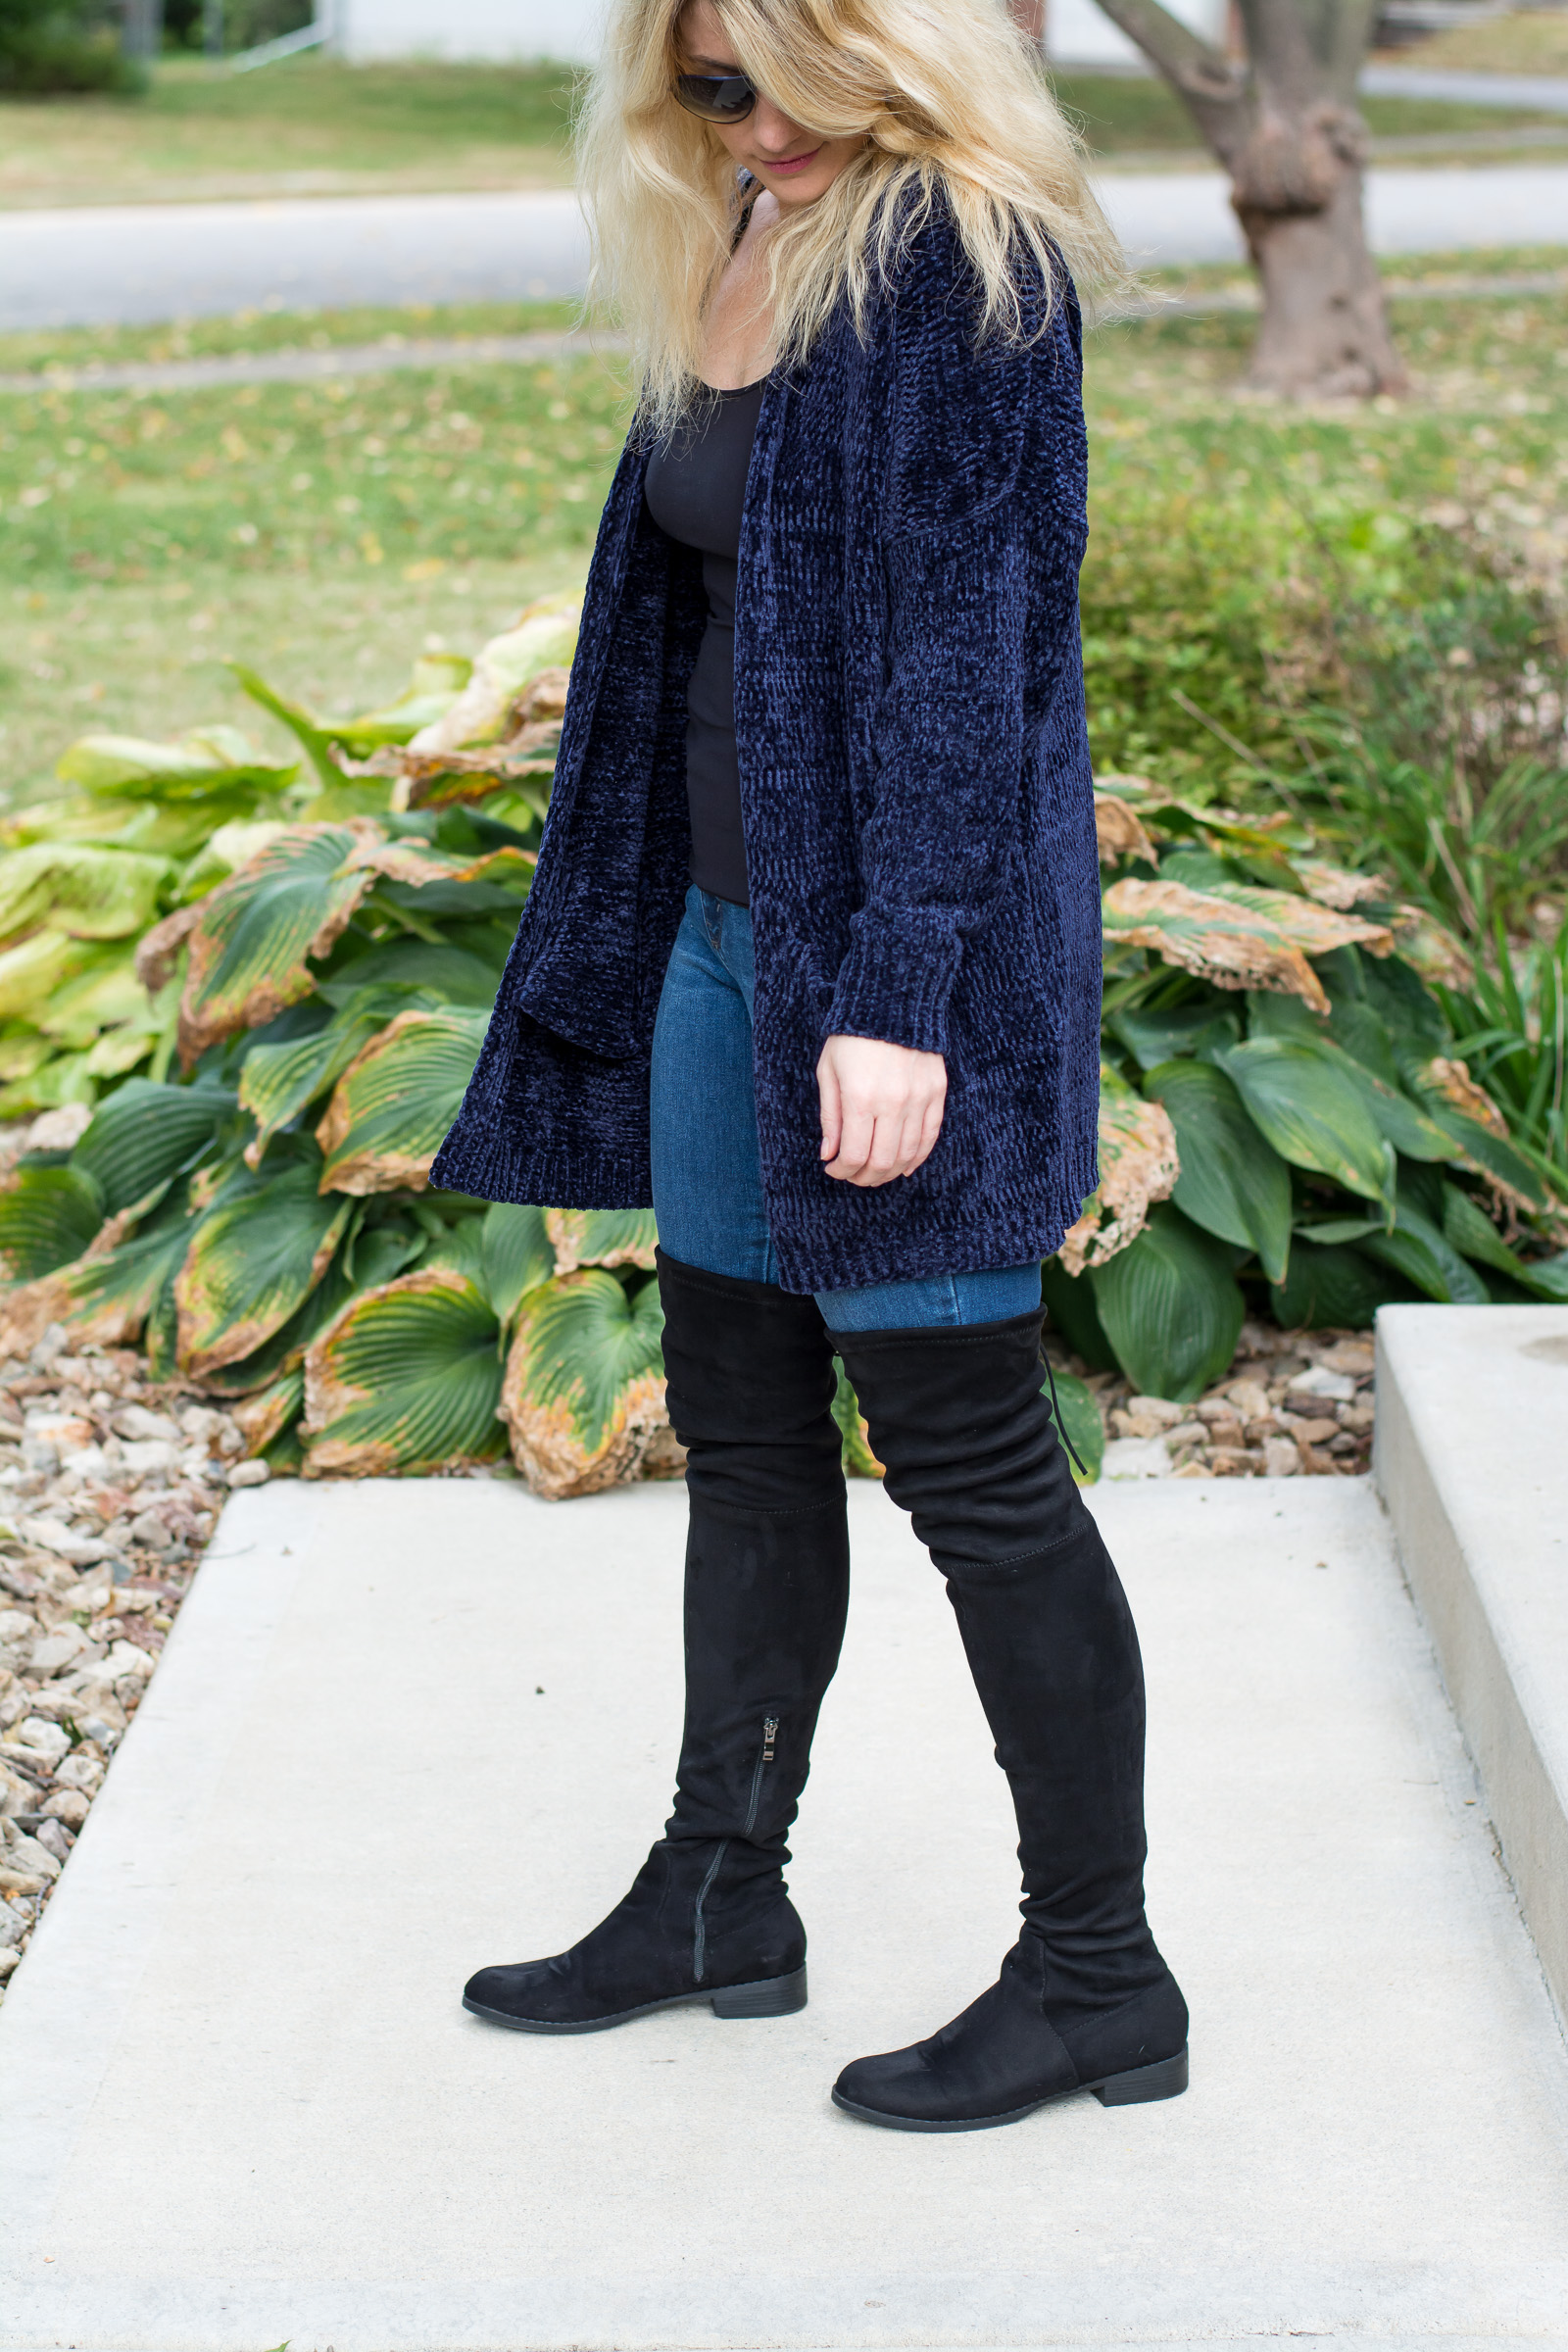 Fall Outfit Idea: Navy Chenille Cardigan. | Ashley from LSR